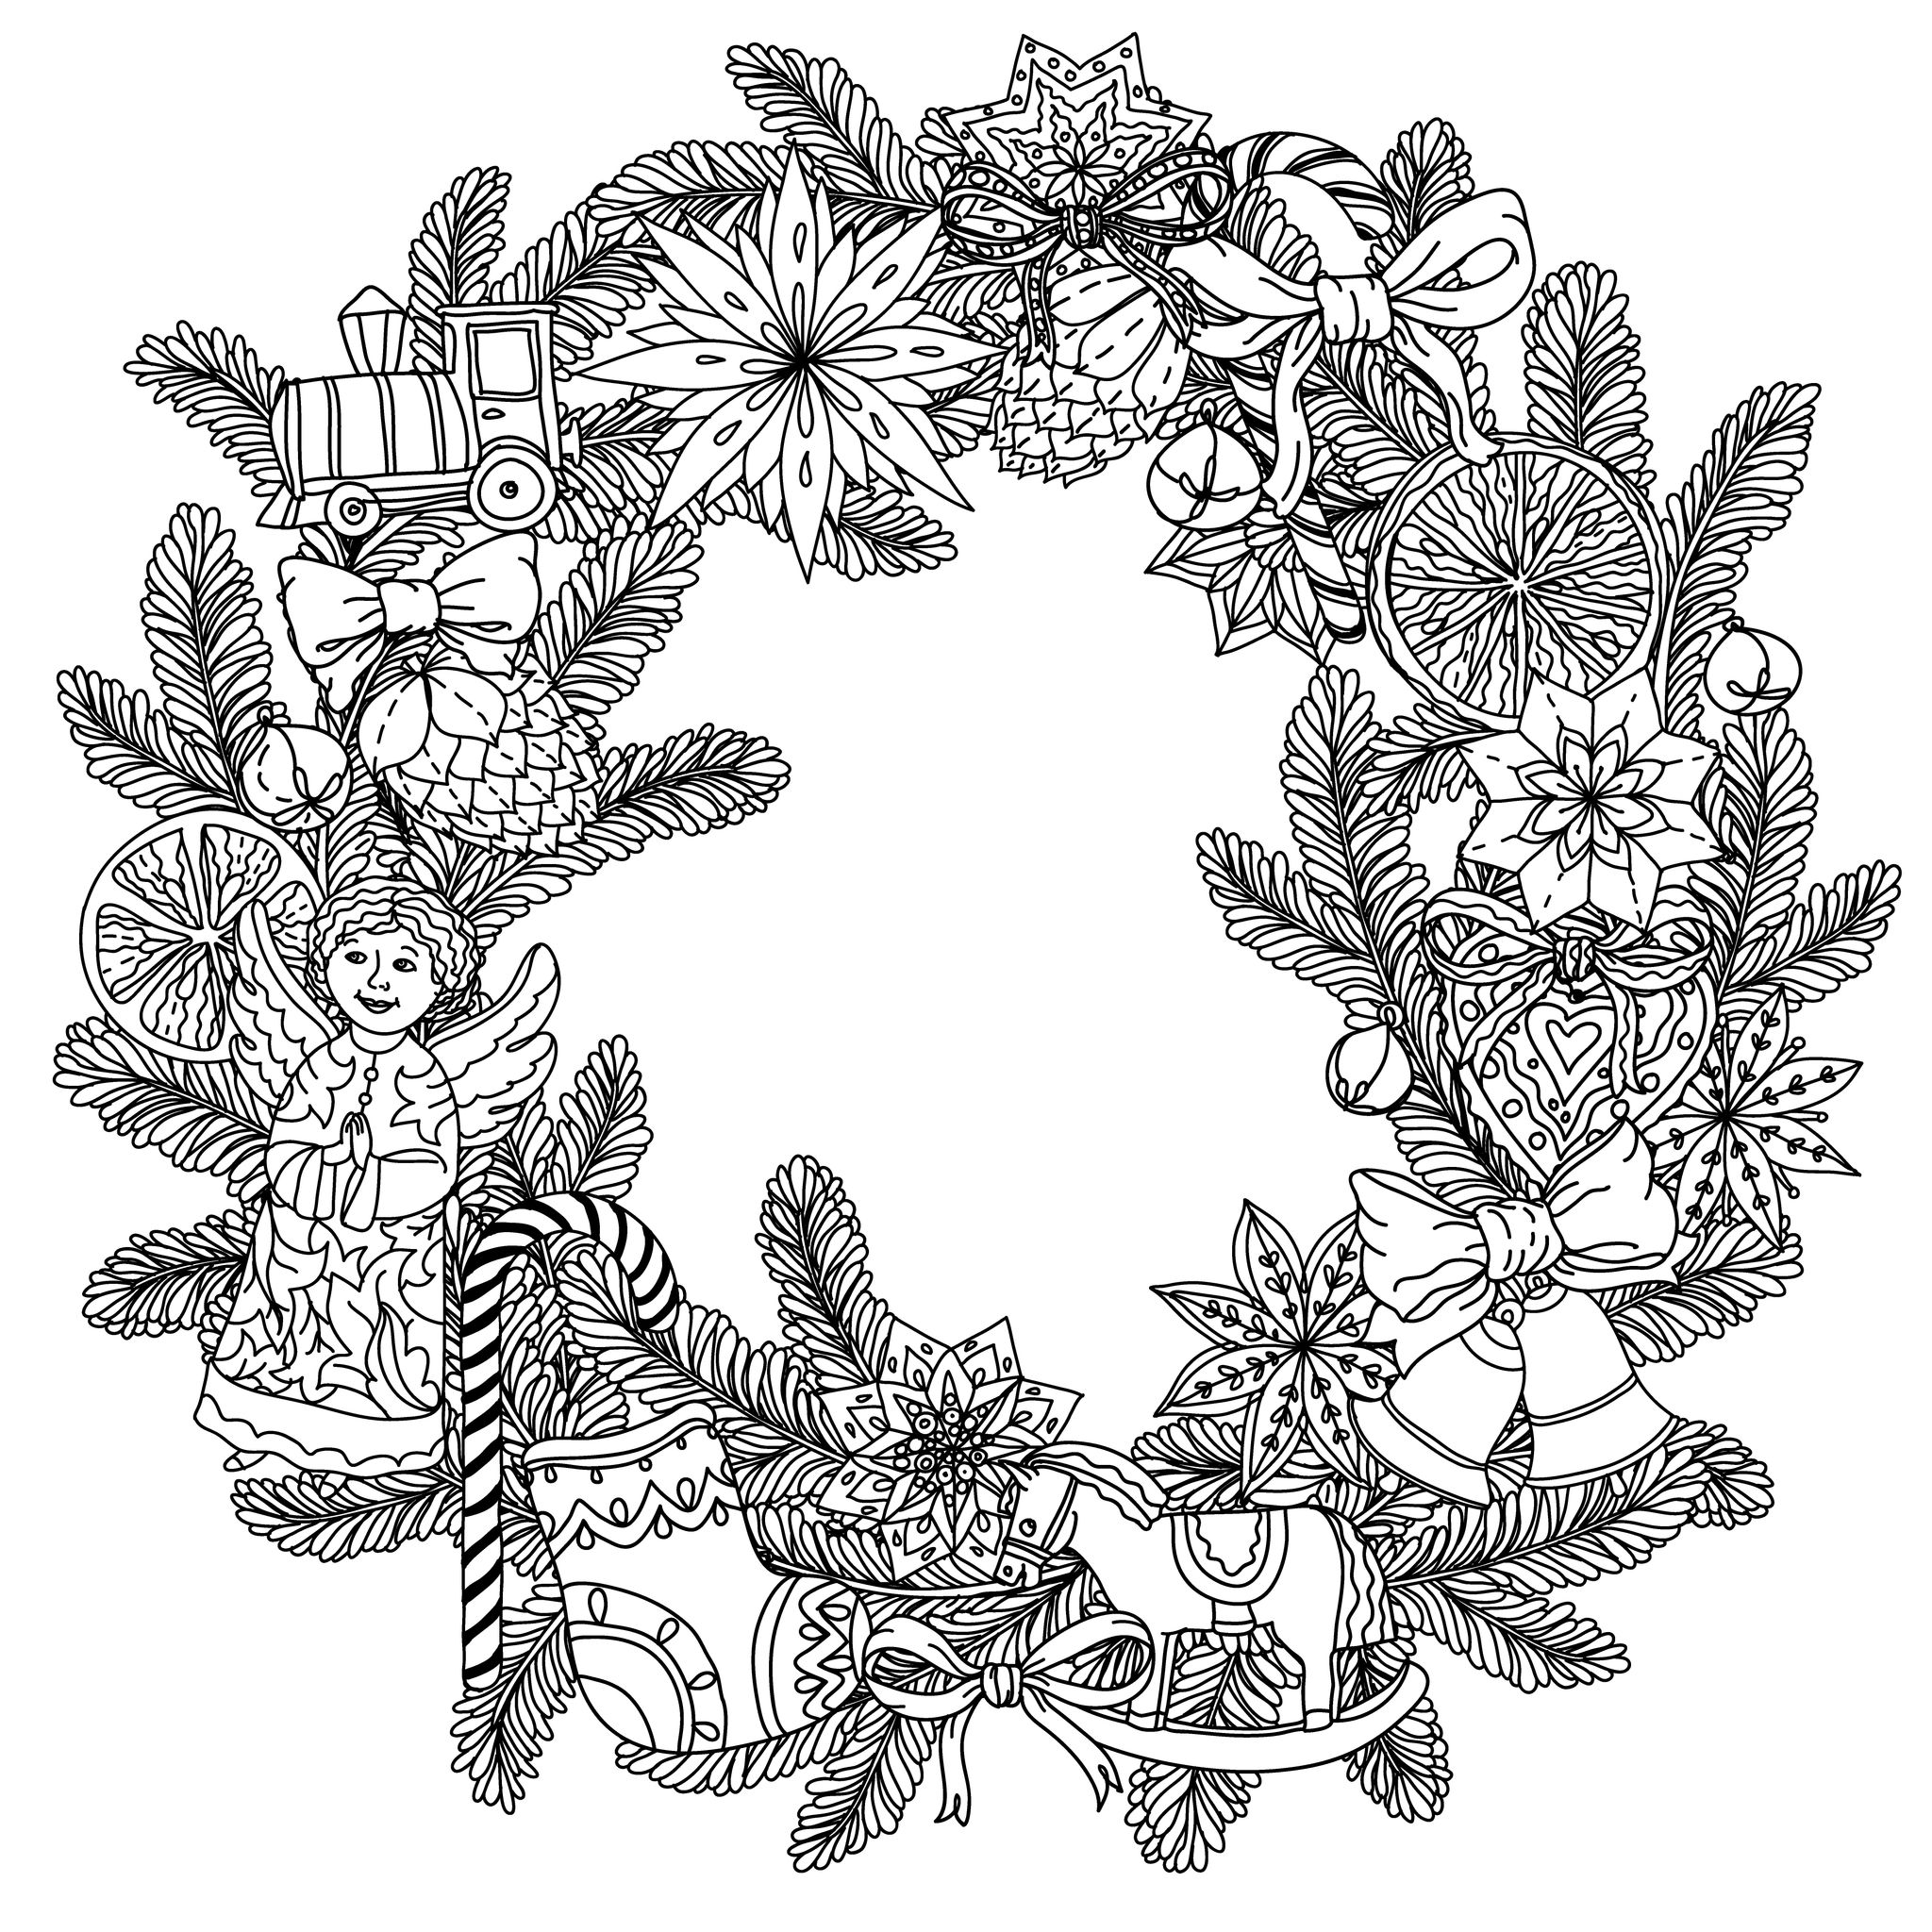 coloring page christmas wreath beautiful christmas wreath with decorative items with angel stars socks and gifts